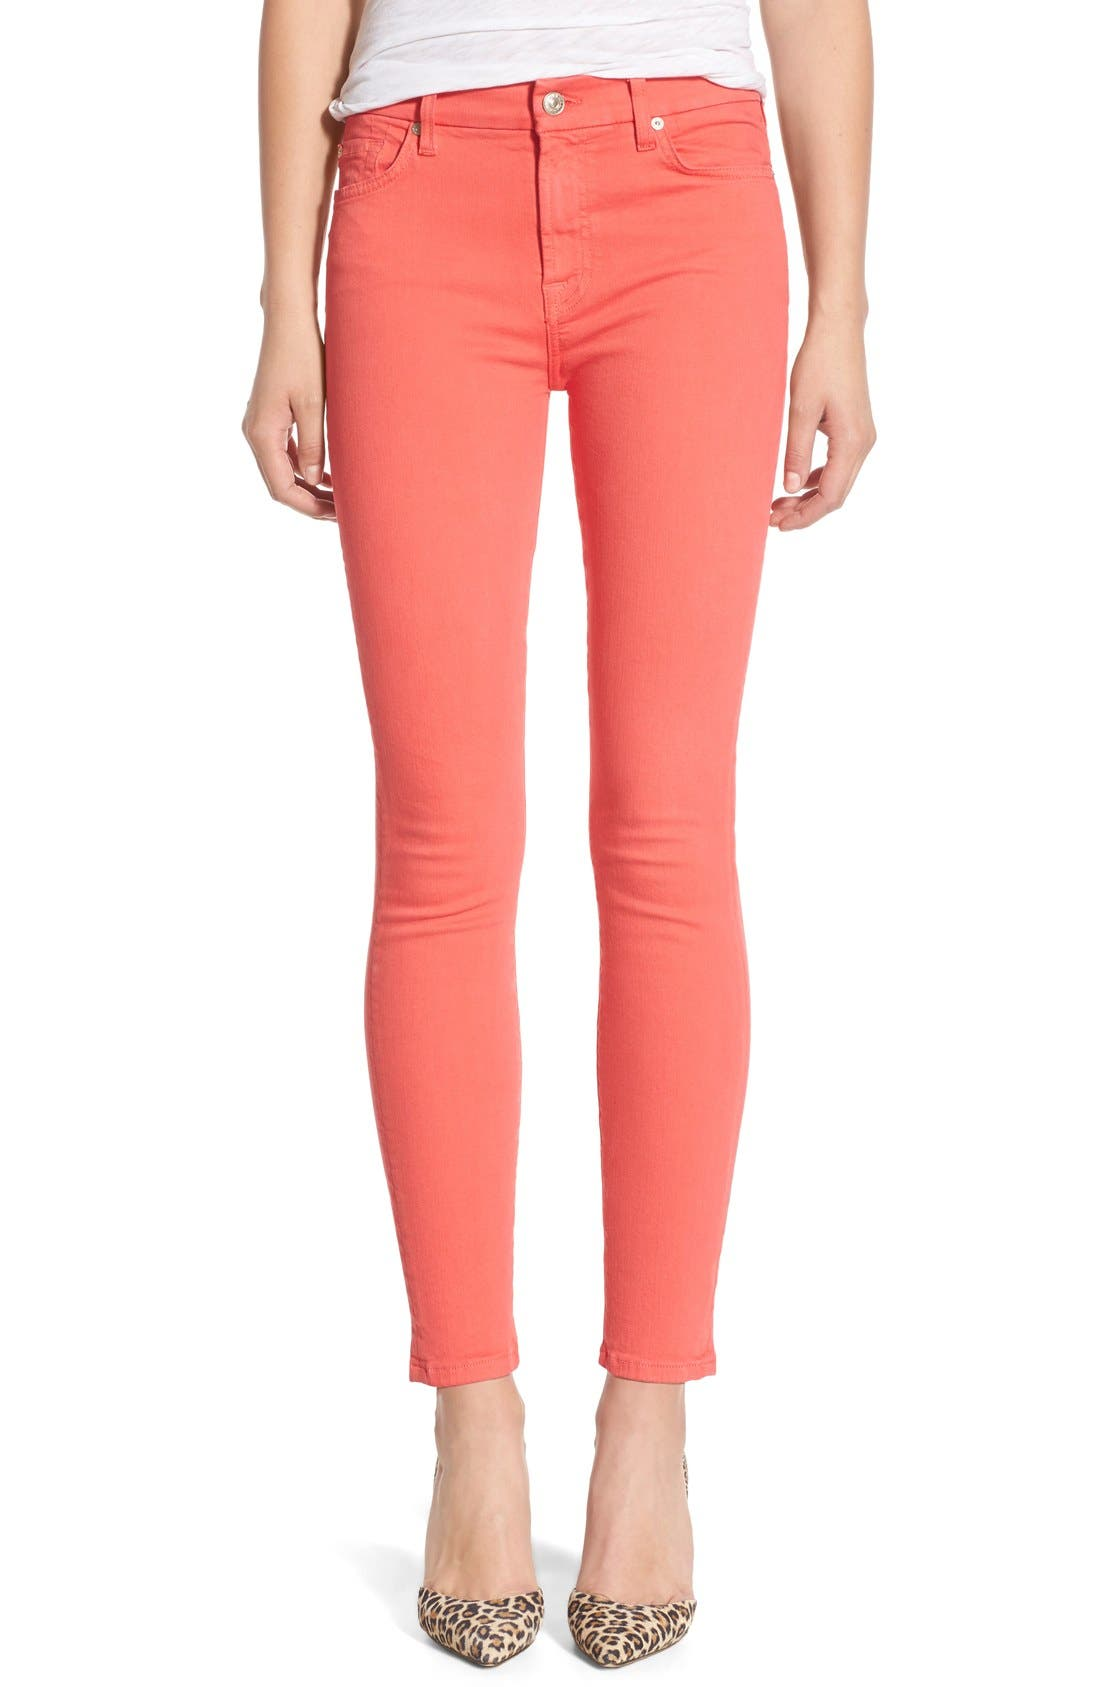 Alternate Image 1 Selected - 7 For All Mankind® 'Slim Illusion' Colored Ankle Skinny Jeans